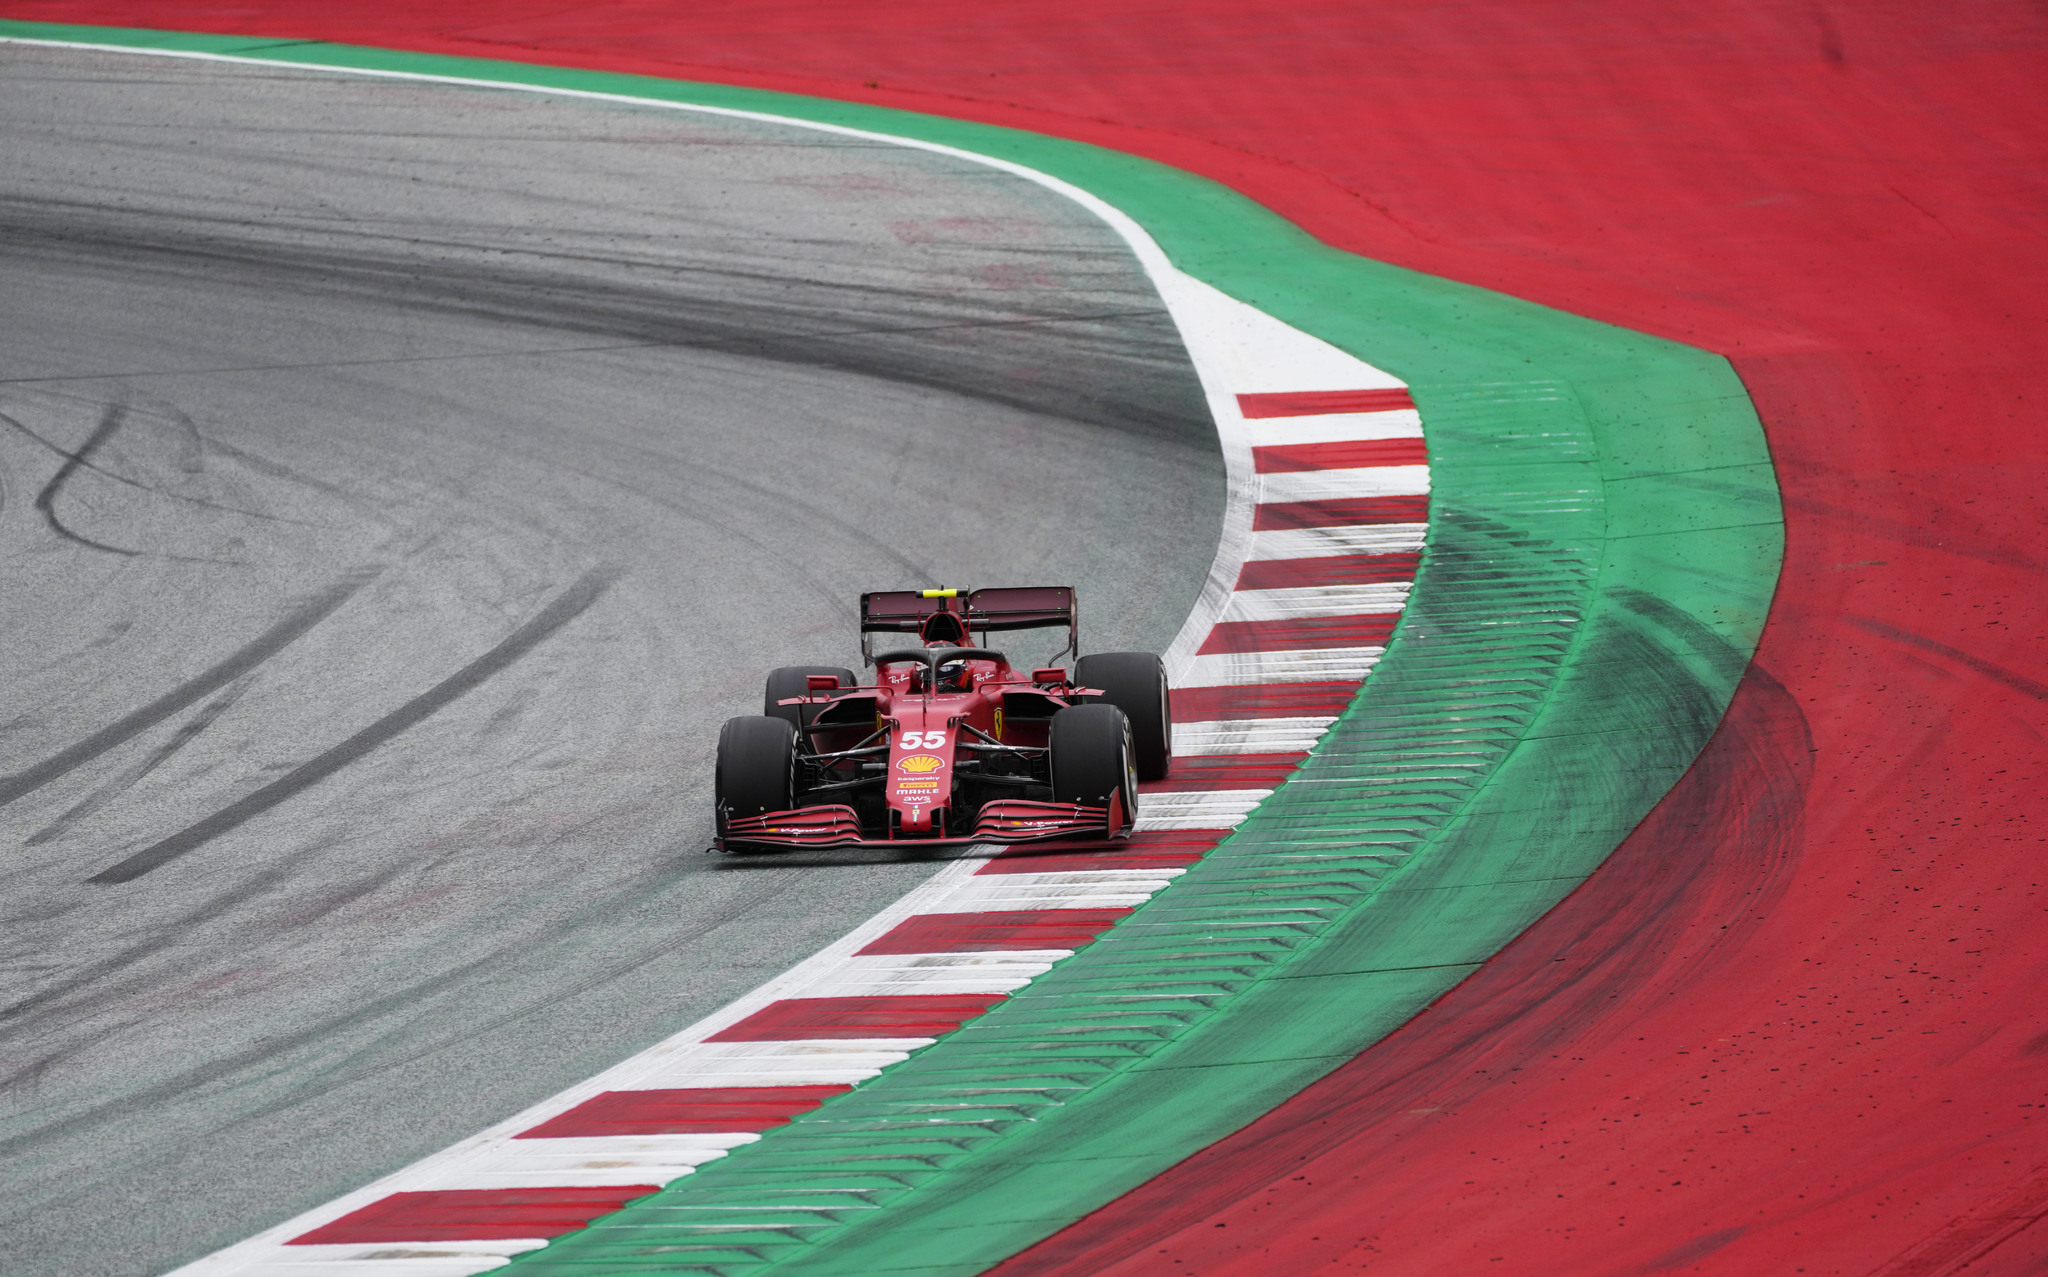 Ferrari driver lt;HIT gt;Carlos lt;/HIT gt; lt;HIT gt;Sainz lt;/HIT gt; of Spain steers his car during the first free practice for the Austrian Formula One Grand Prix at the Red Bull Ring racetrack in Spielberg, Austria, Friday, July 2, 2021. The Austrian Grand Prix will be held on Sunday. (AP Photo/Darko Bandic)